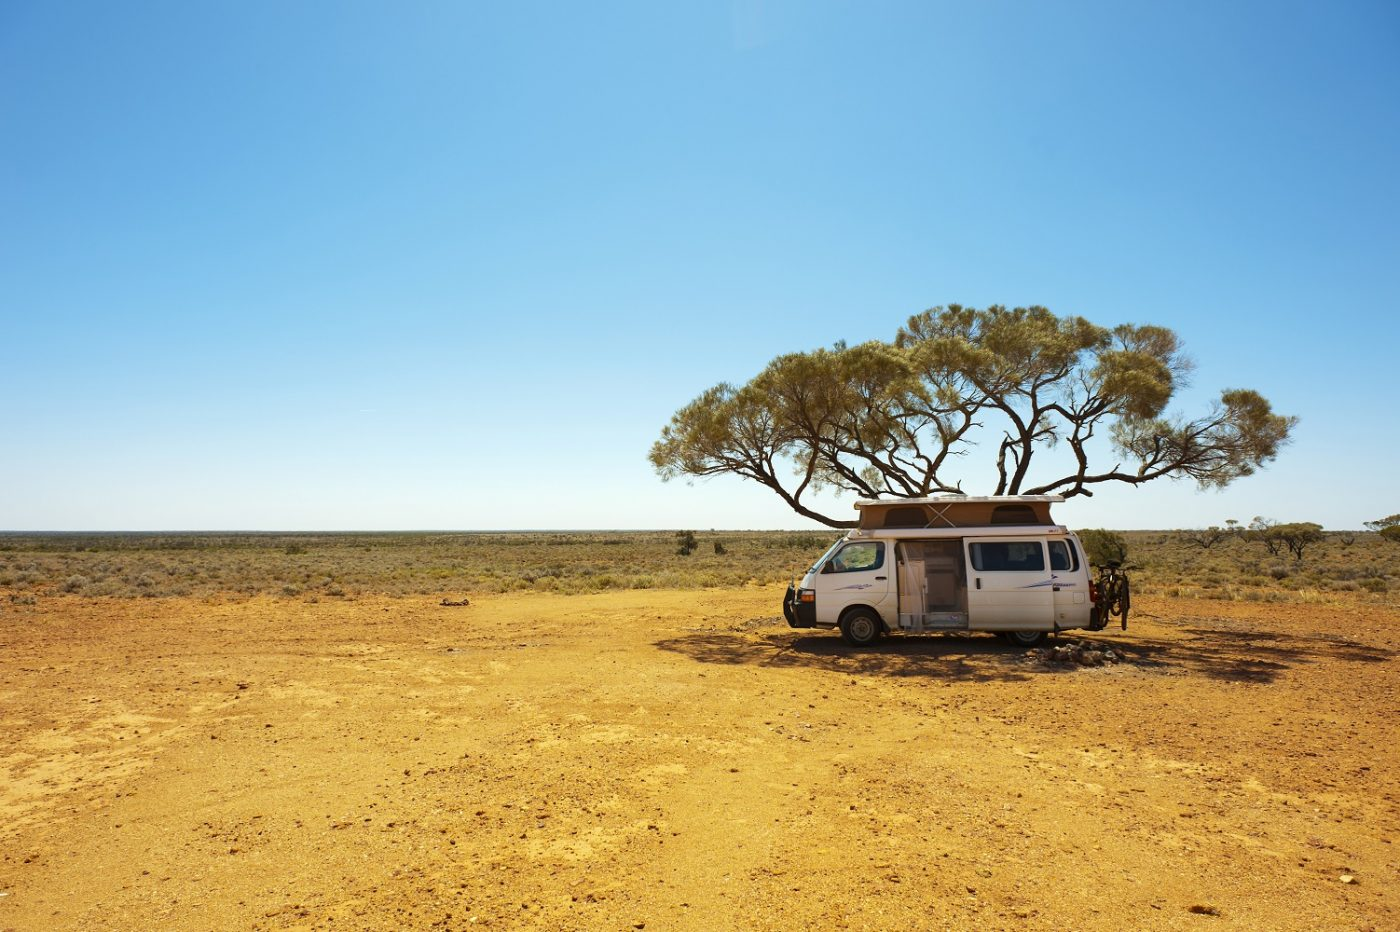 Campingziel Nummer 11: Namibia